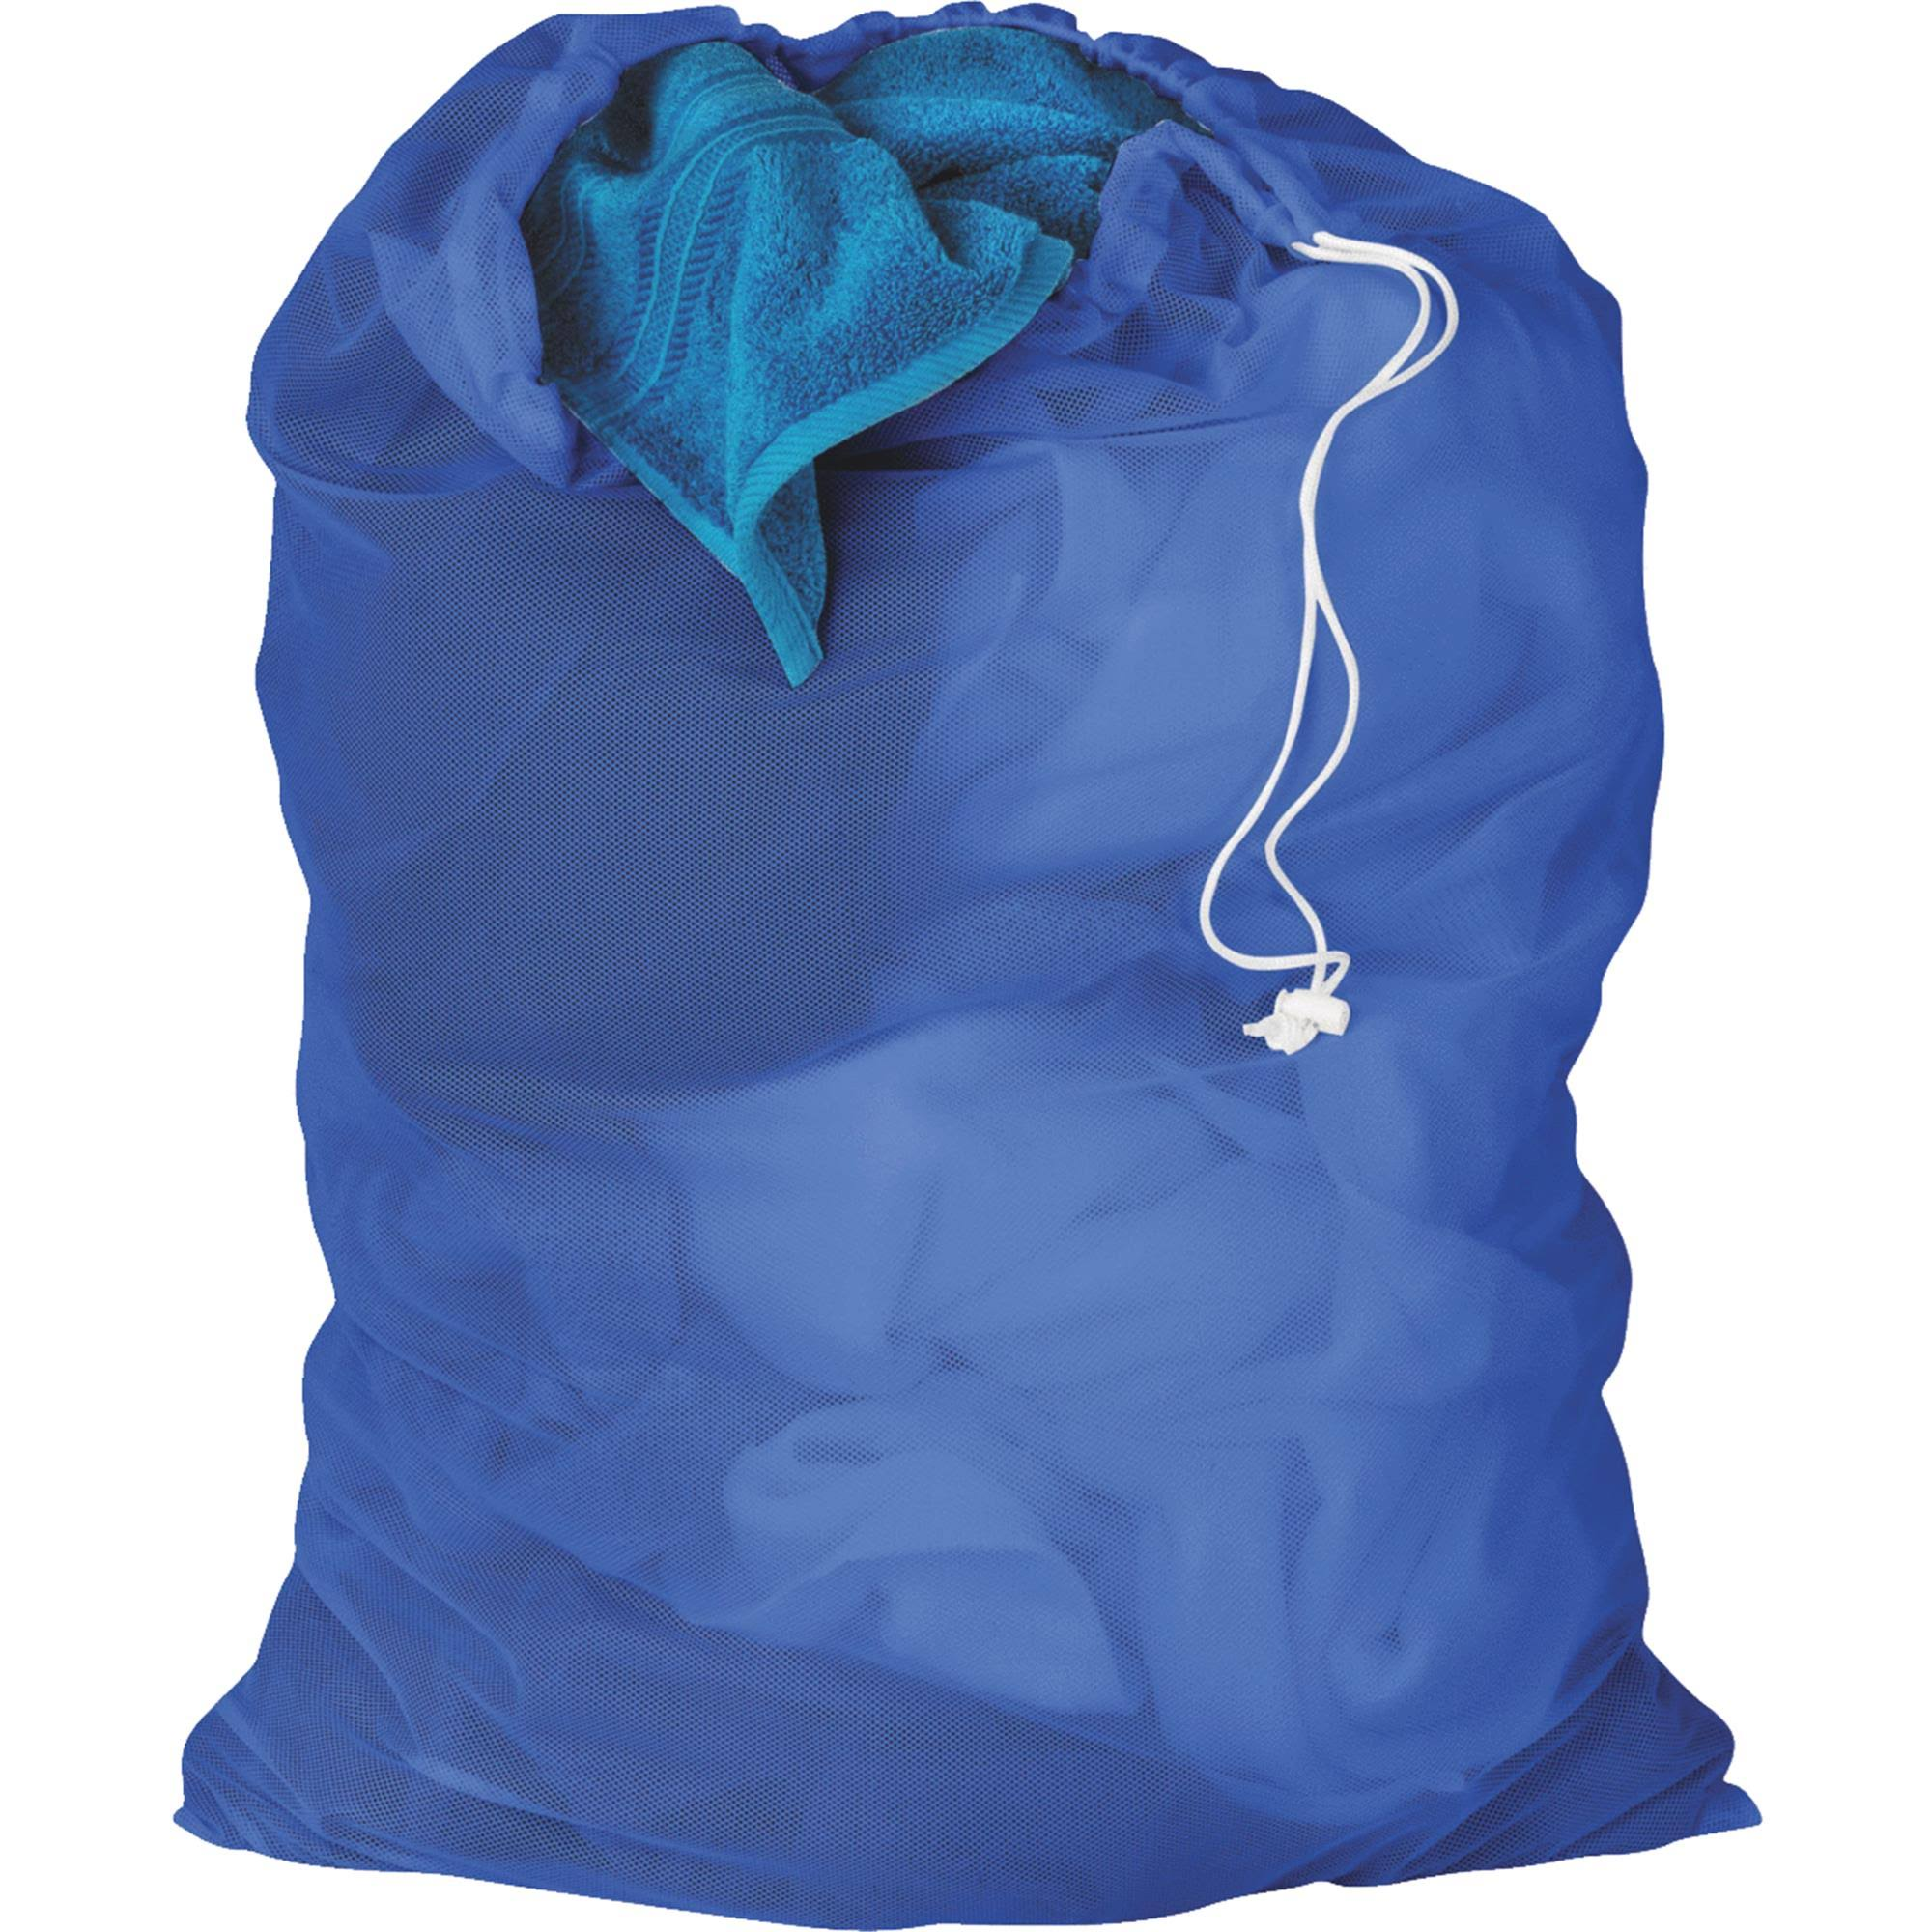 "Honey Can Do Mesh Laundry Bag - with Drawstring, Blue, 24"" x 36"""